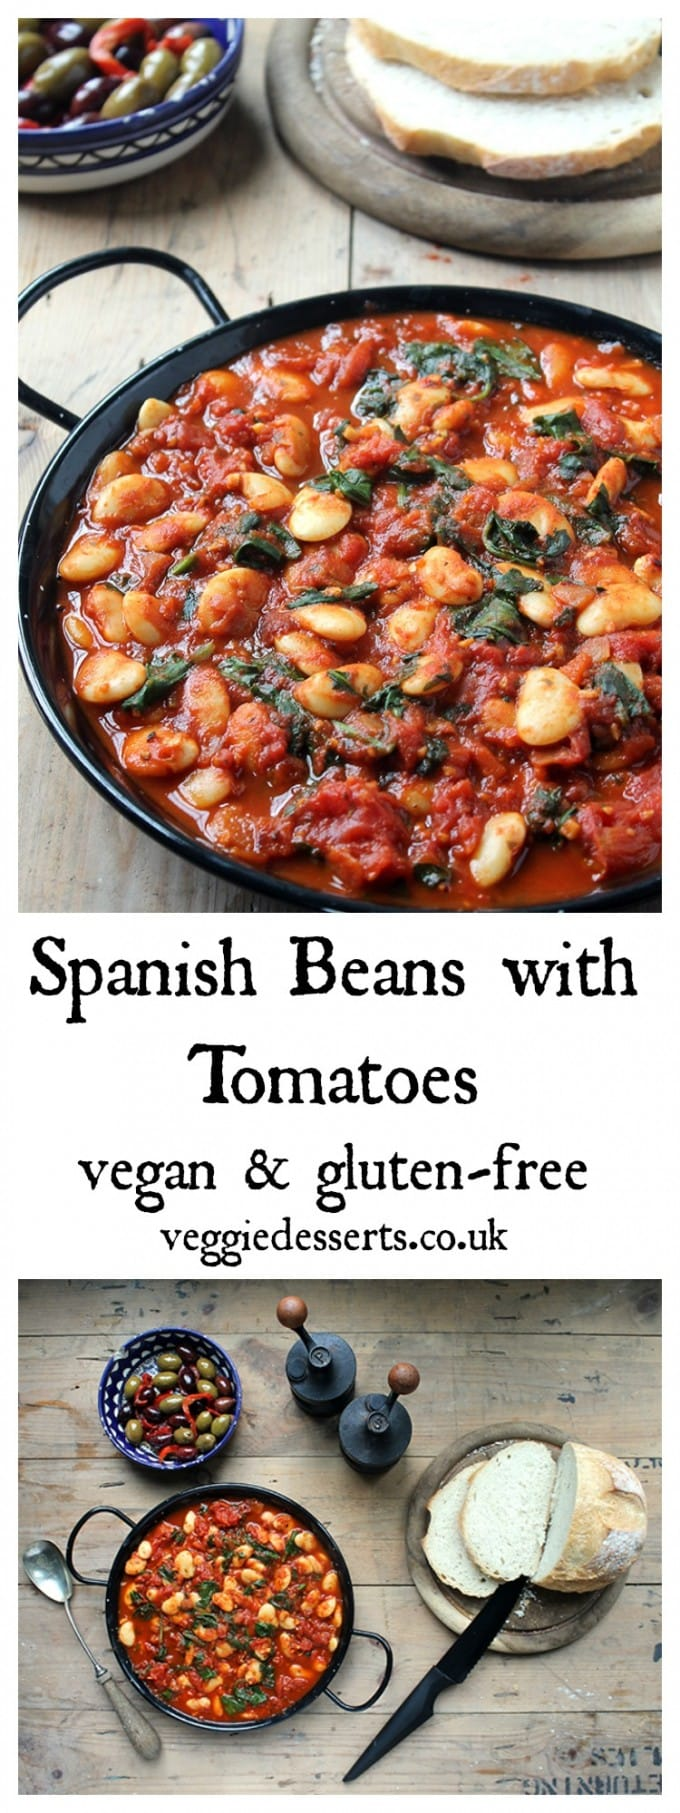 These Spanish beans with tomatoes and smokey sweet spices are so easy to make in less than 20 minutes. They're perfect as tapas, main meals or a side dish. Vegan and gluten-free. #spanishbeans #spanishrecipe #tapasrecipe #tapas #vegan #glutenfreevegan